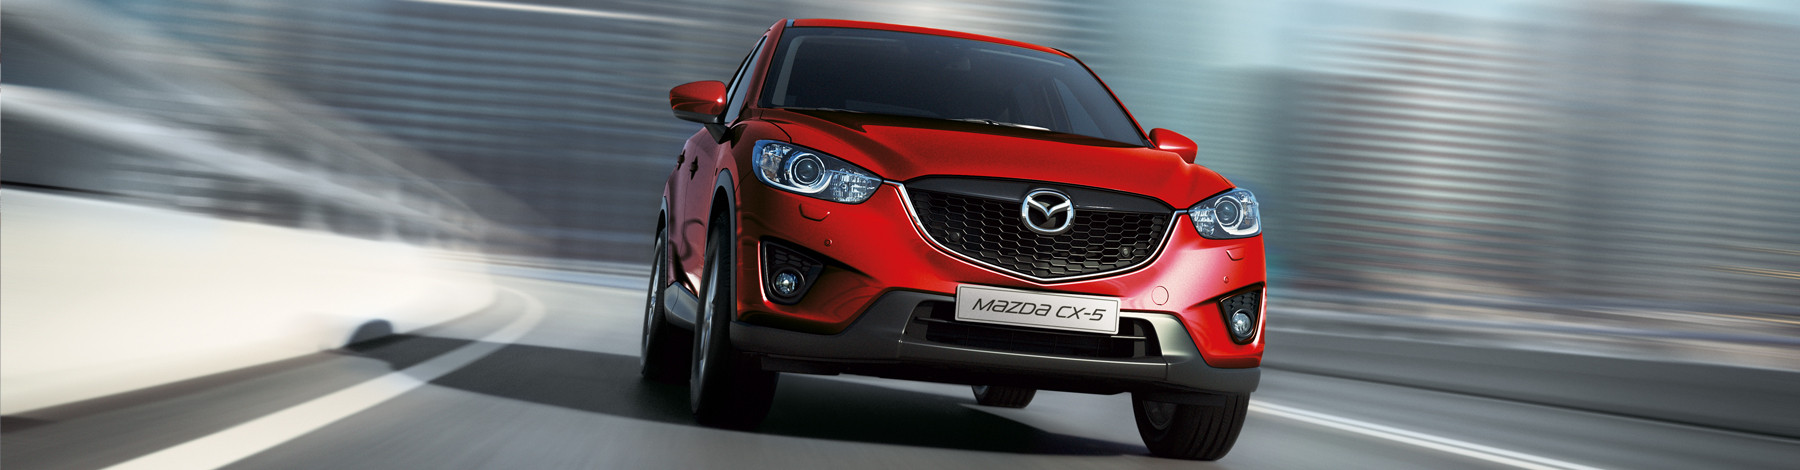 mazda-cx-5-overview